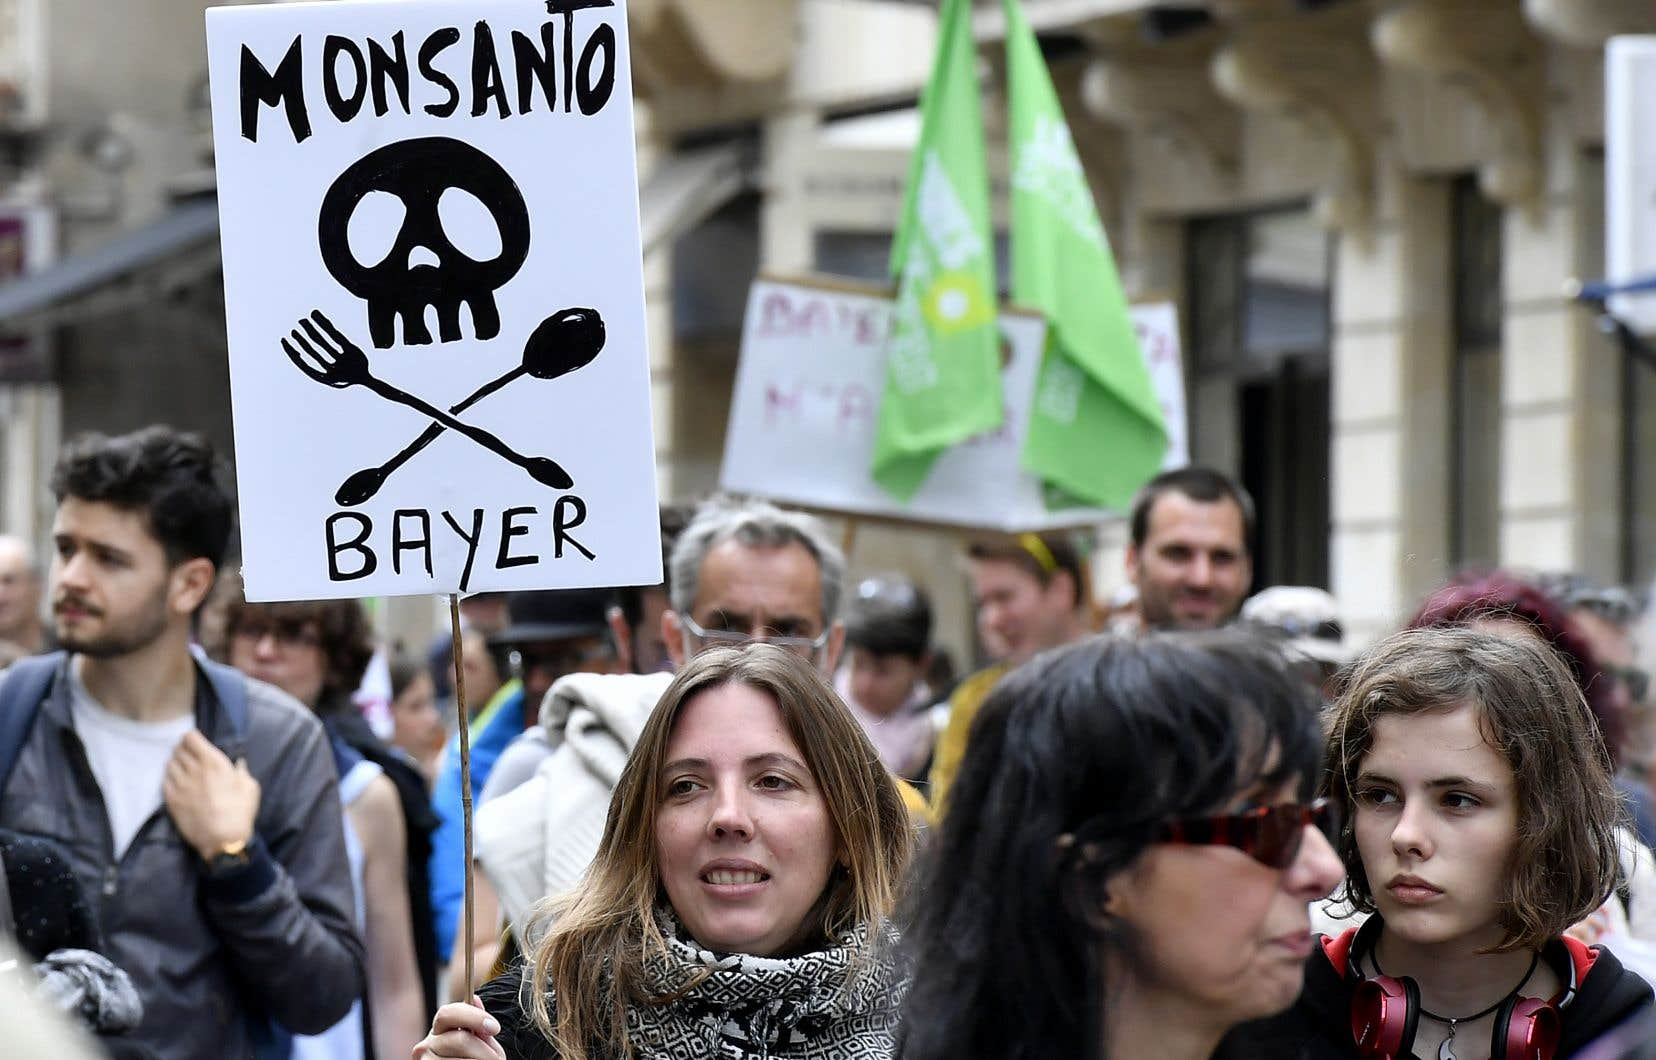 Manifestation contre Monsanto à Bordeaux, en France, le 20 mai 2017